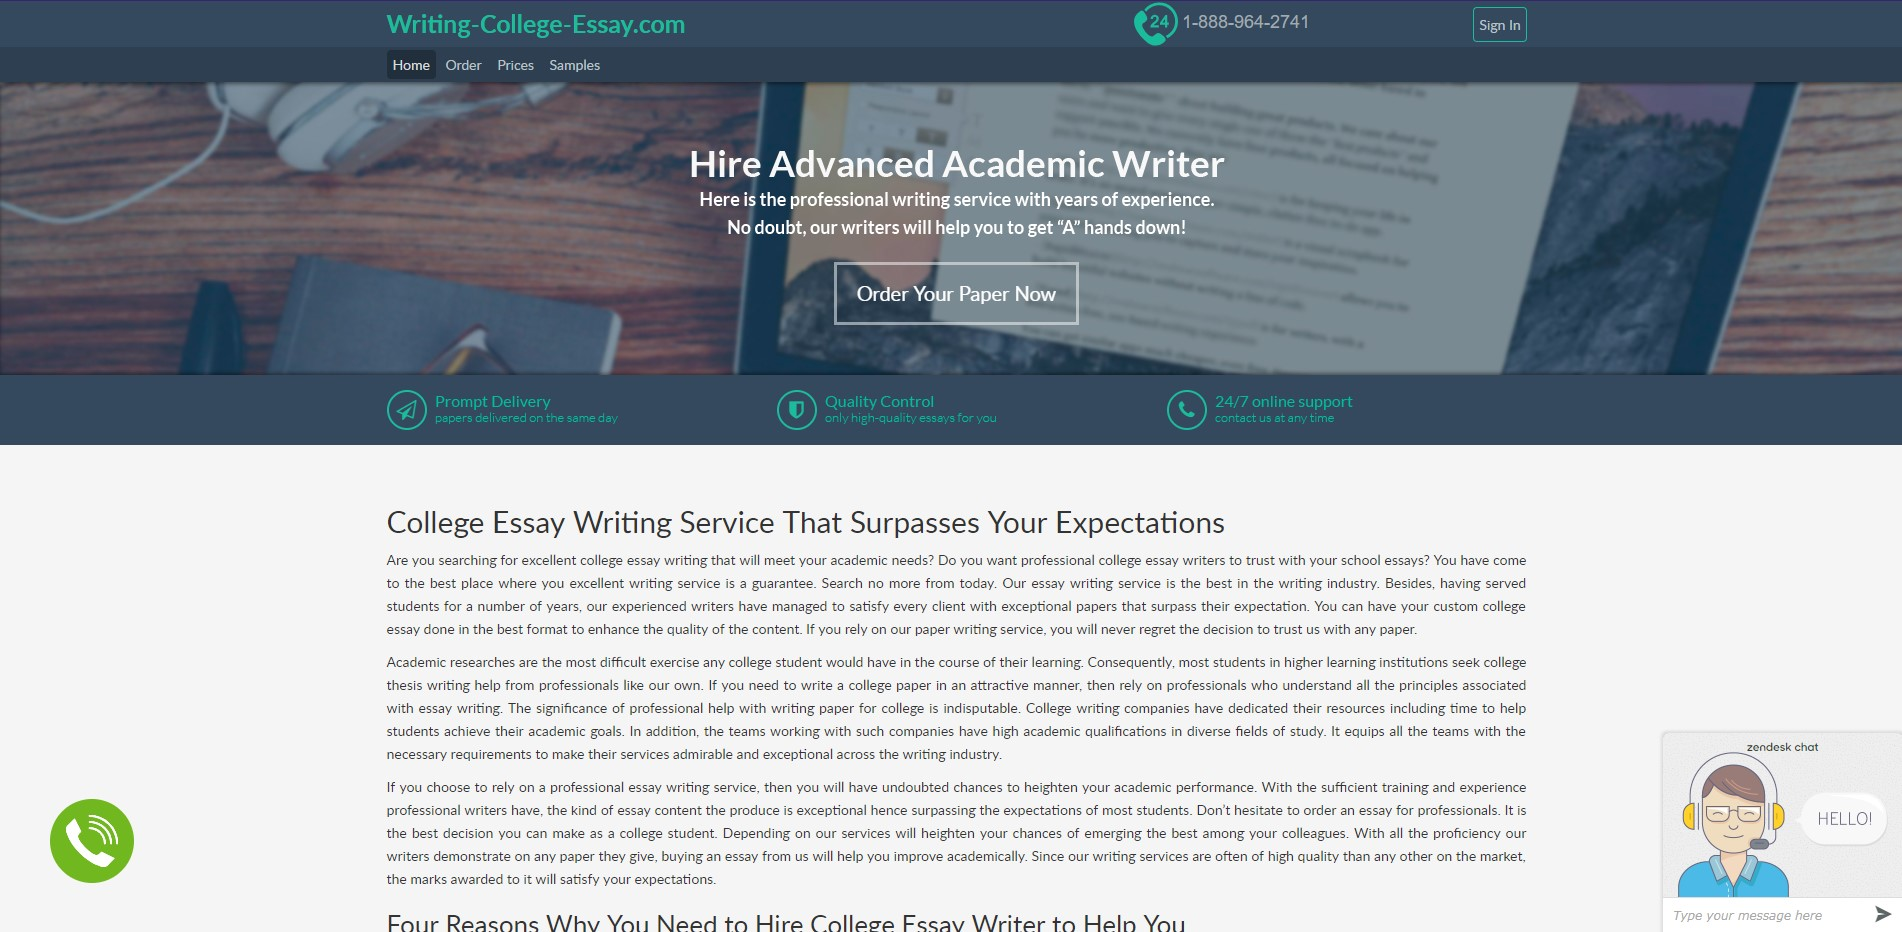 How To Write A Business Essay  Thesis Statement Examples Essays also Essays On English Literature Writingcollegeessaycom Review  Custom Essays Services  Terrorism Essay In English